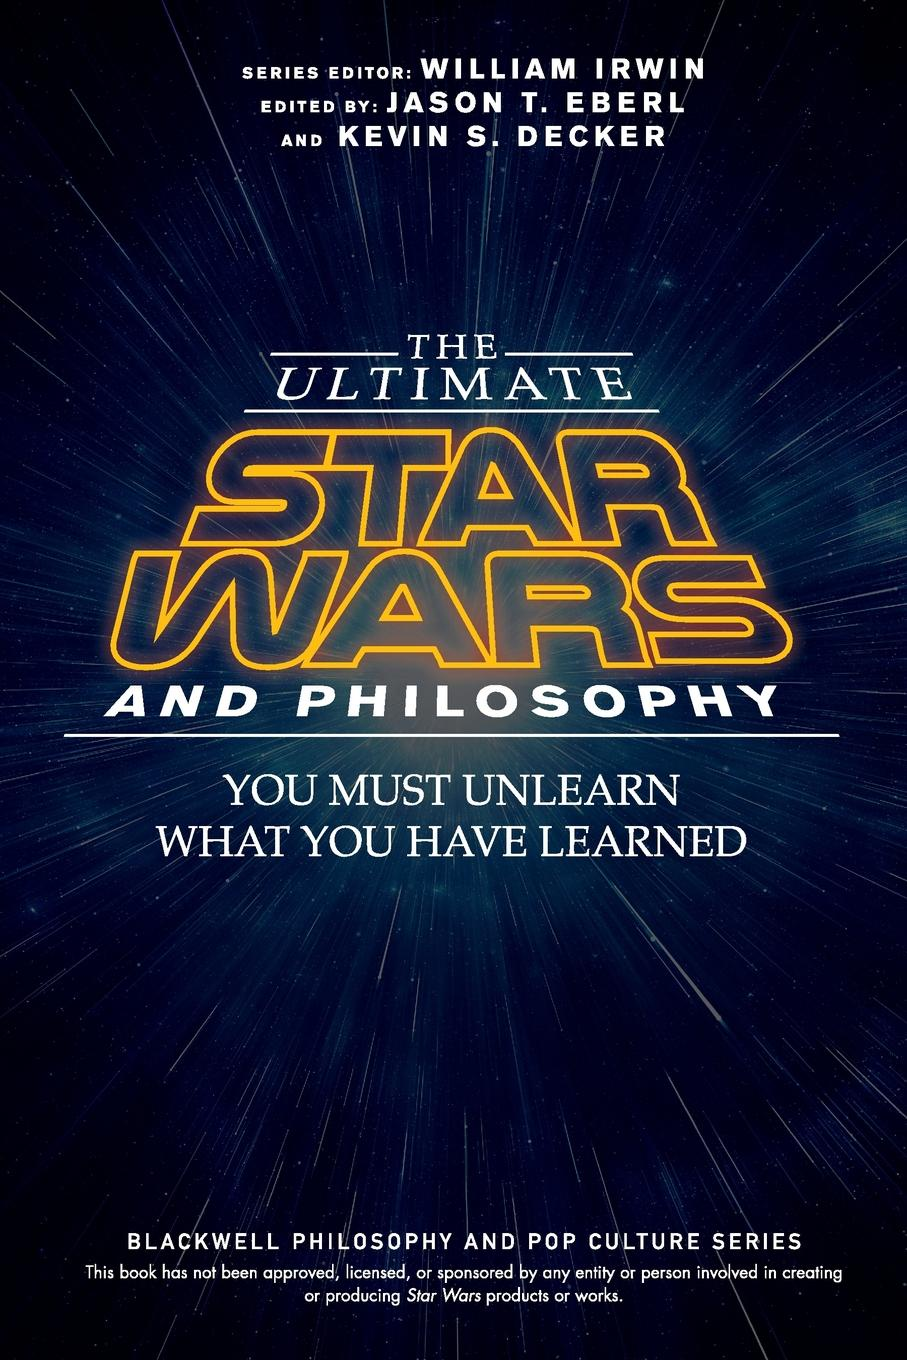 Jason T. Eberl The Ultimate Star Wars and Philosophy - You Must Unlearn What You Have Learned william irwin final fantasy and philosophy the ultimate walkthrough